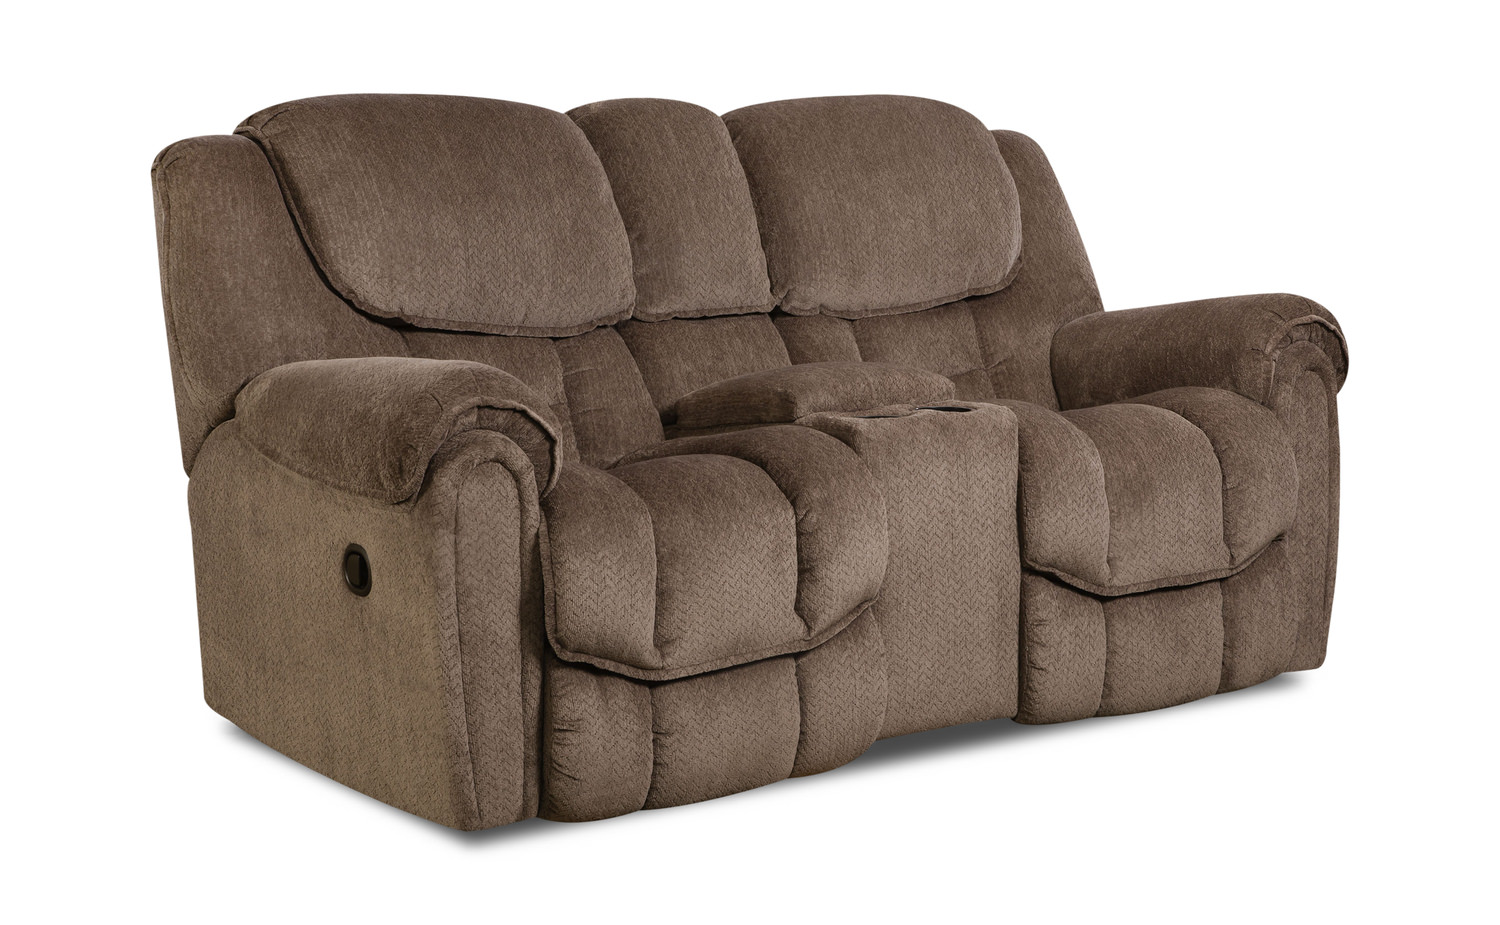 Remarkable Del Mar Reclining Loveseat With Console Pabps2019 Chair Design Images Pabps2019Com